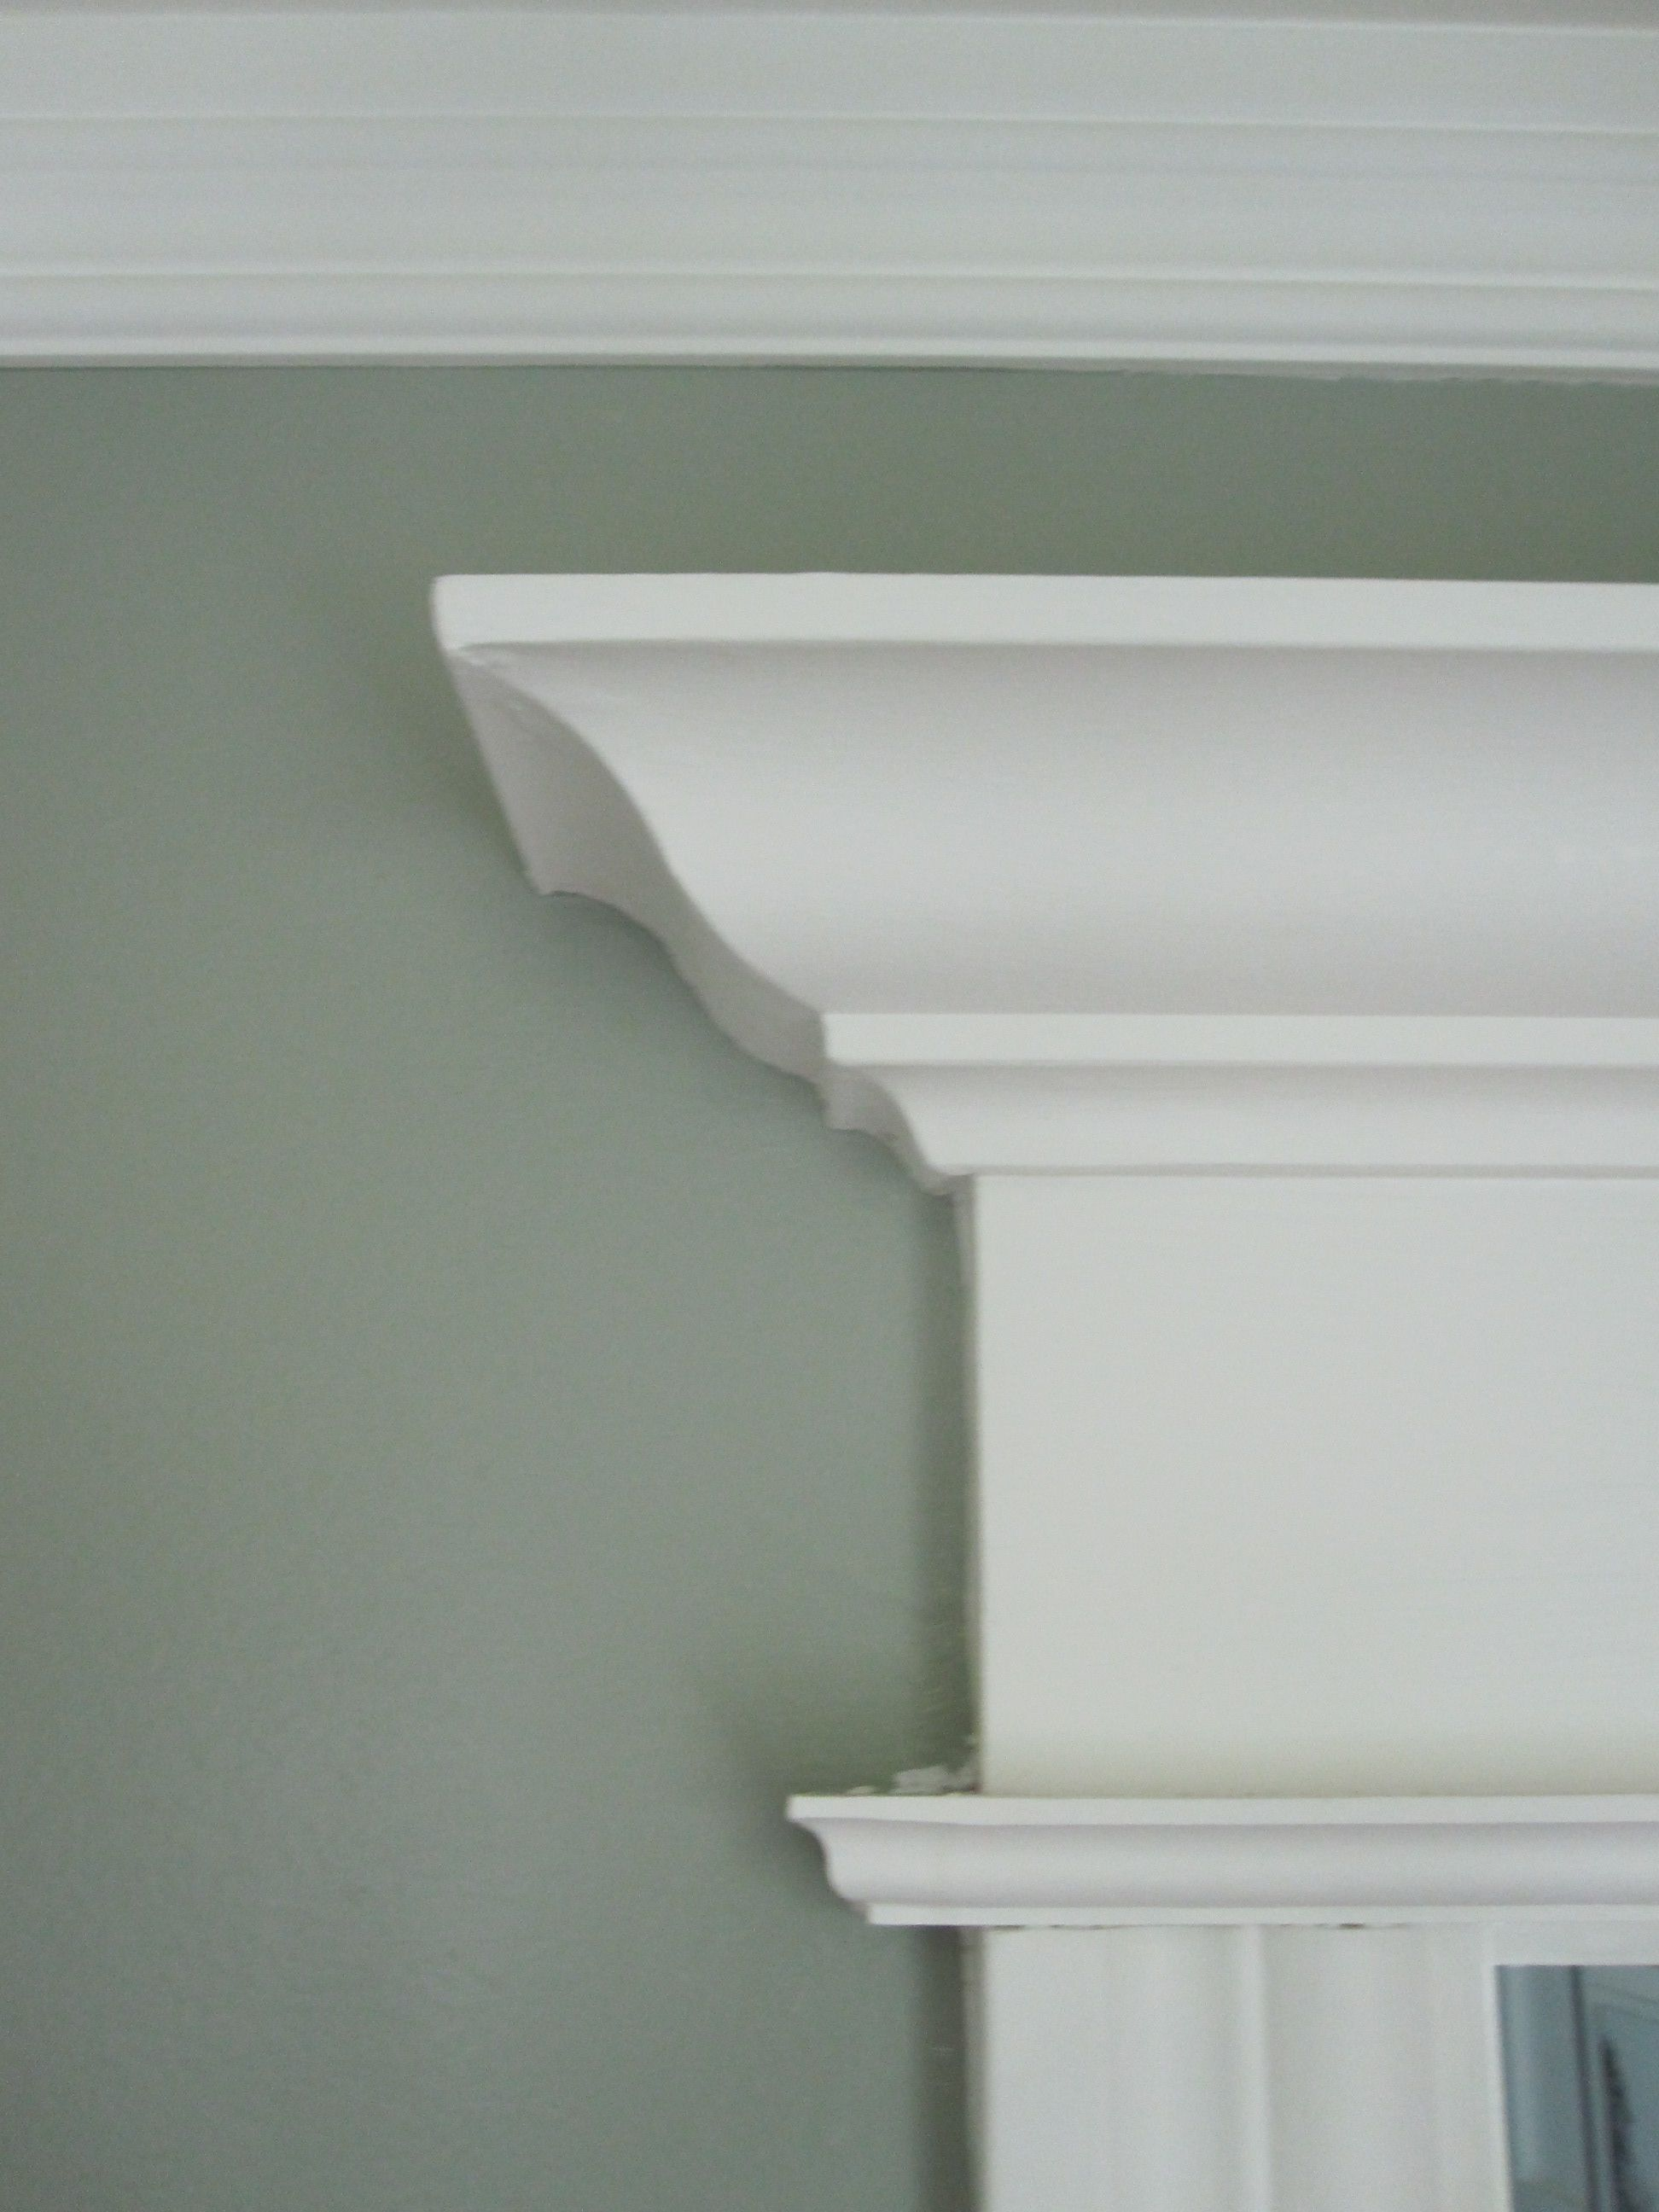 Mouldings Crown Moulding For Door Toppers And Other Trims Bayer Built Woodworks Baseboard Styles Window Molding Moldings And Trim